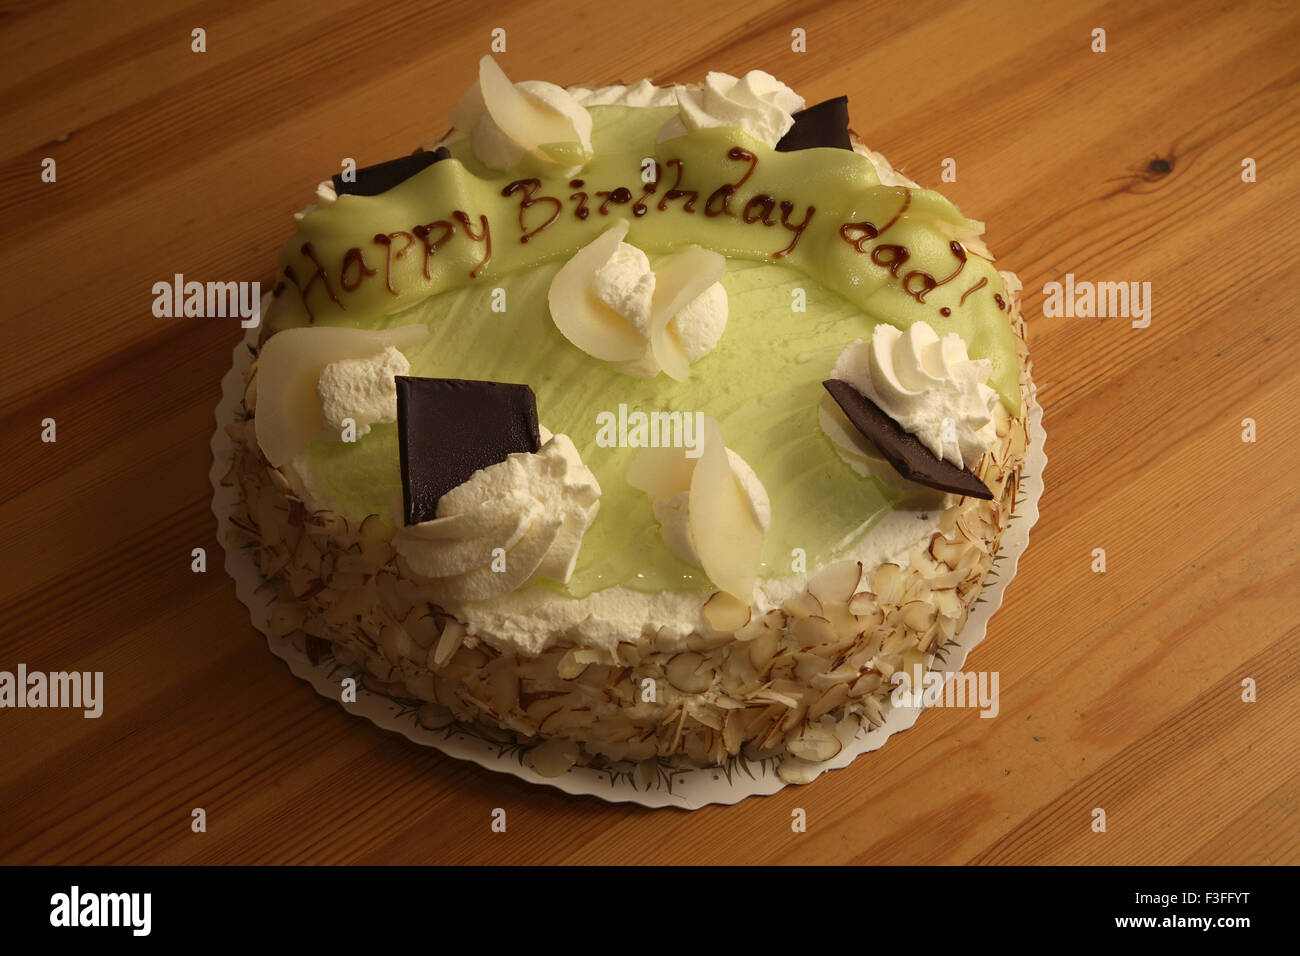 Birthday Cake For Dad With Marzipan Jelly Fresh Crme Slices Of Pear